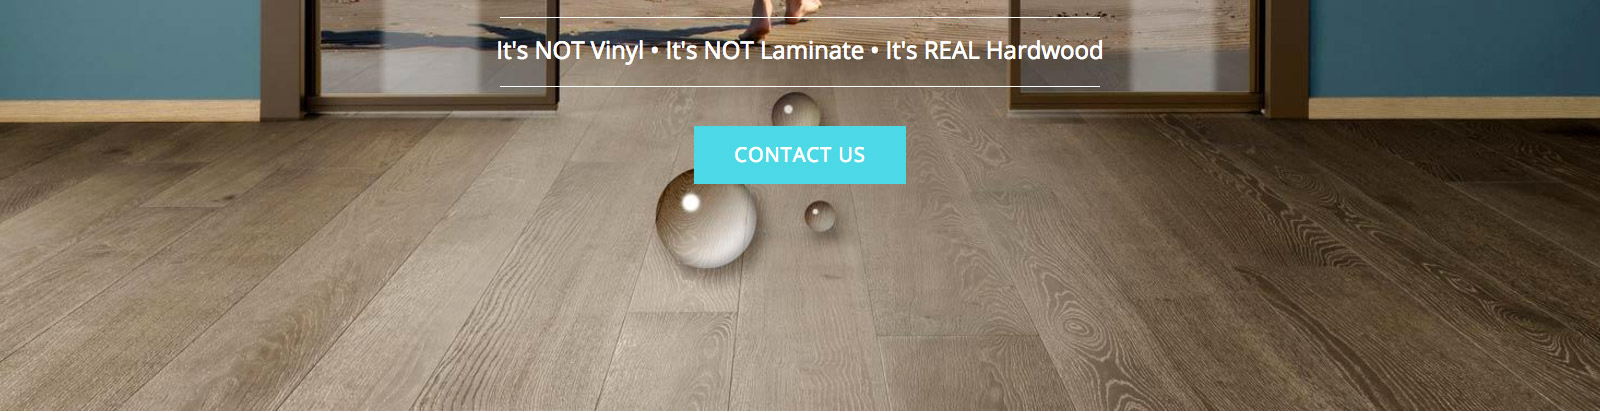 Flooring website branding creative design art marketing advertising